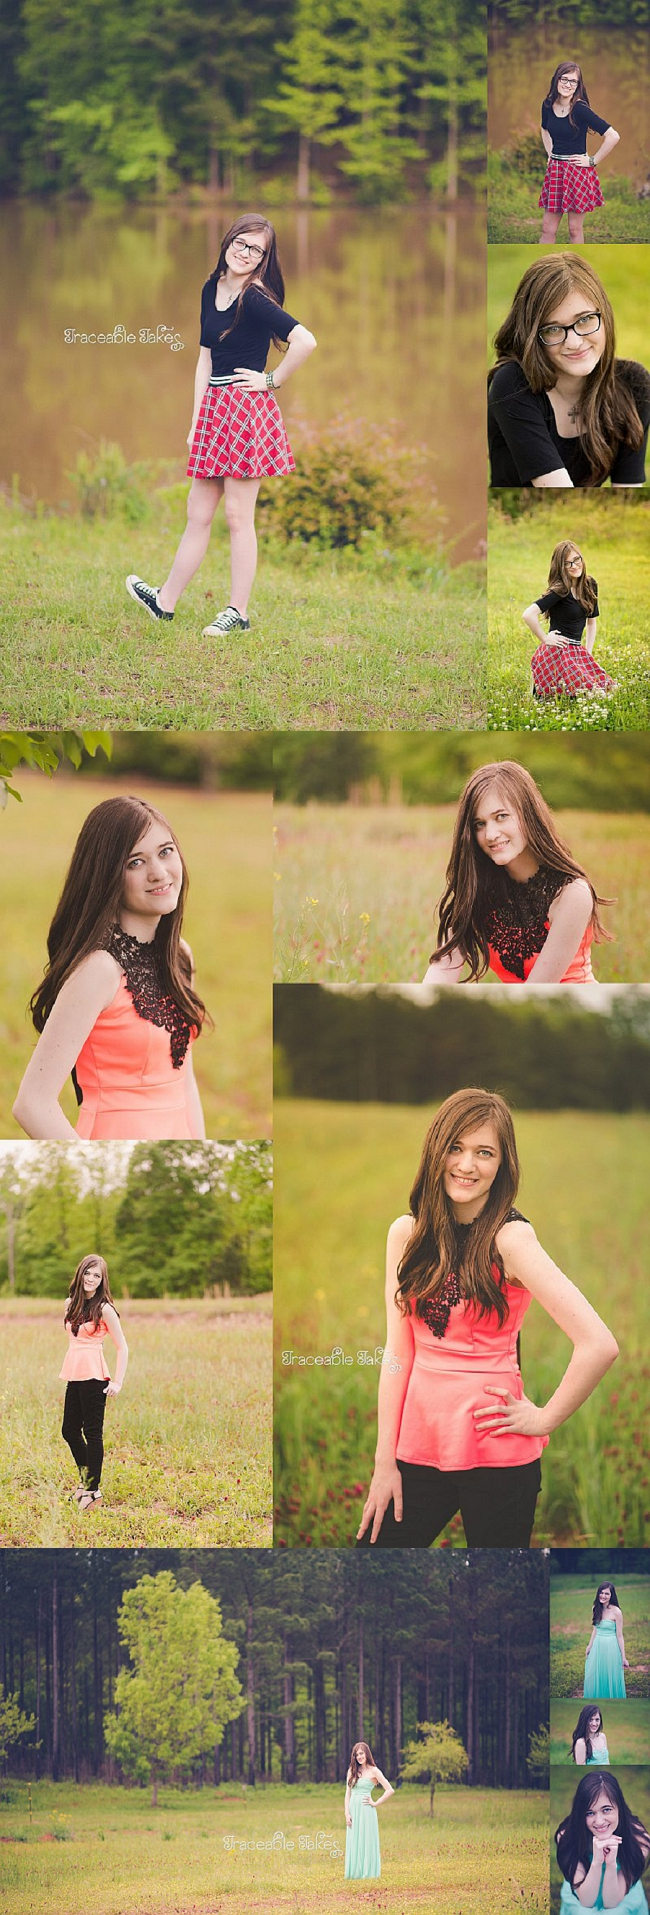 traceable-takes-senior-portraits-1233_traceabletakes